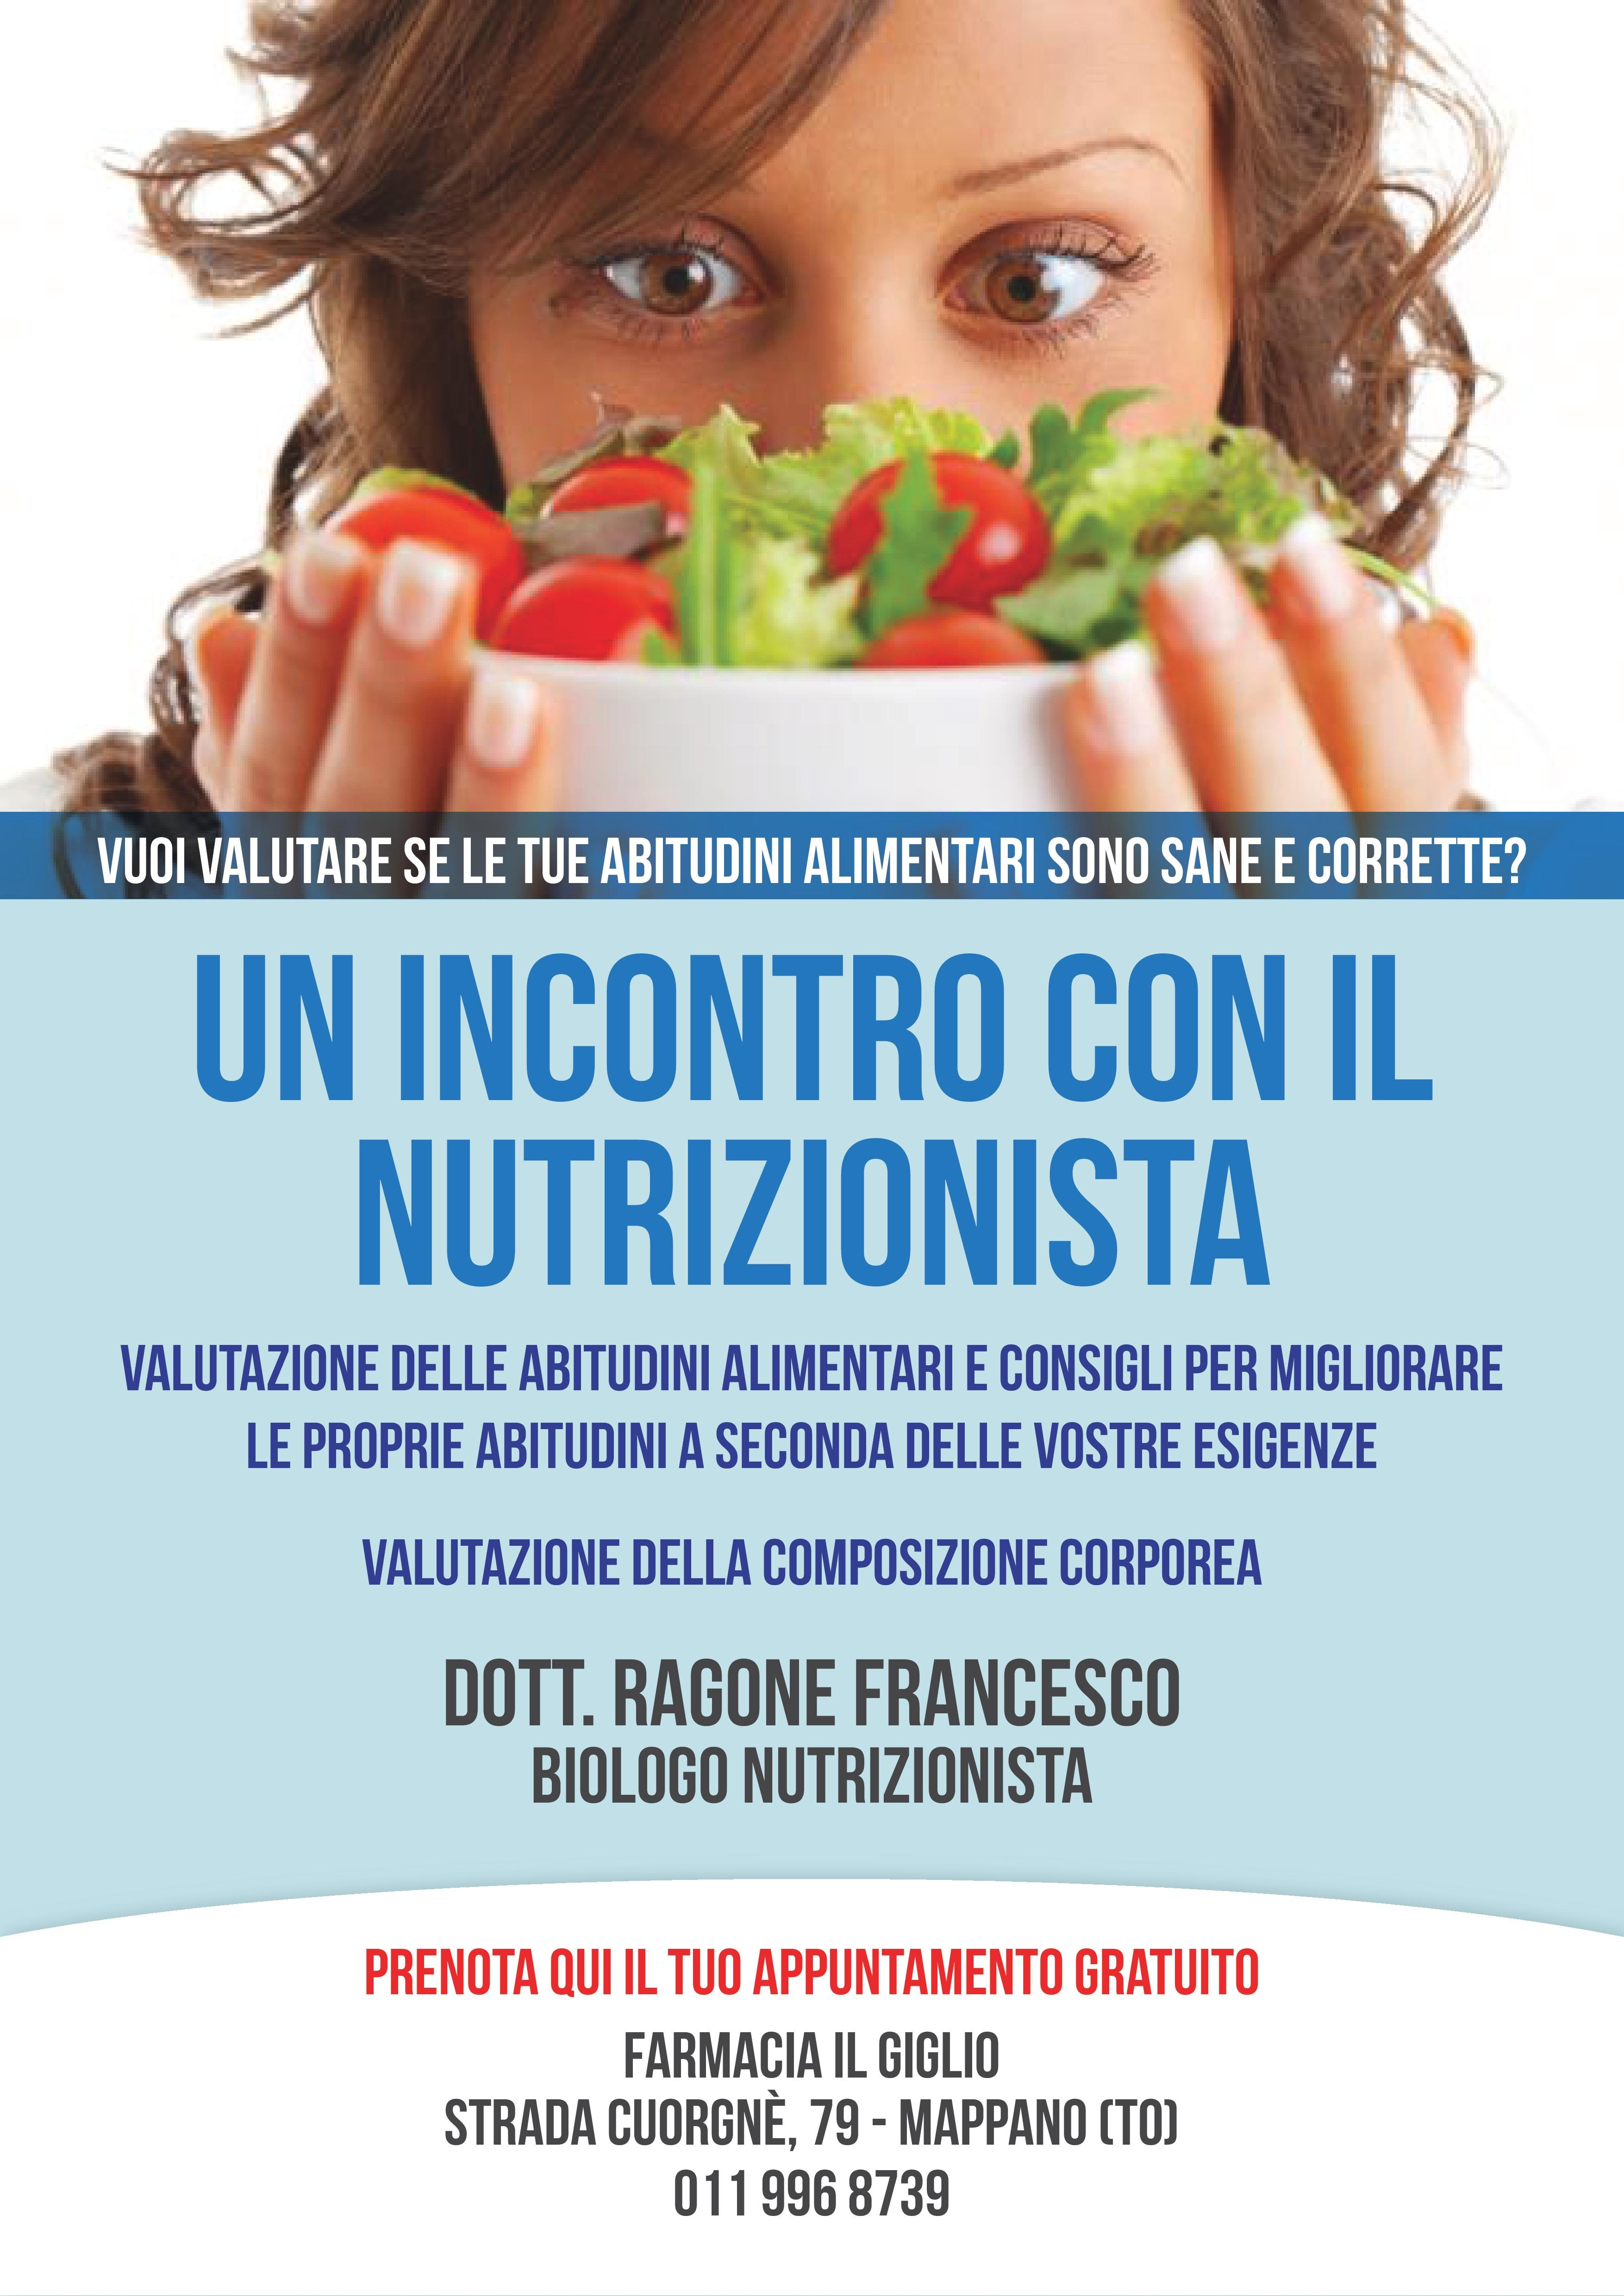 Incontro col nutrizionista a Caselle Torinese, TO